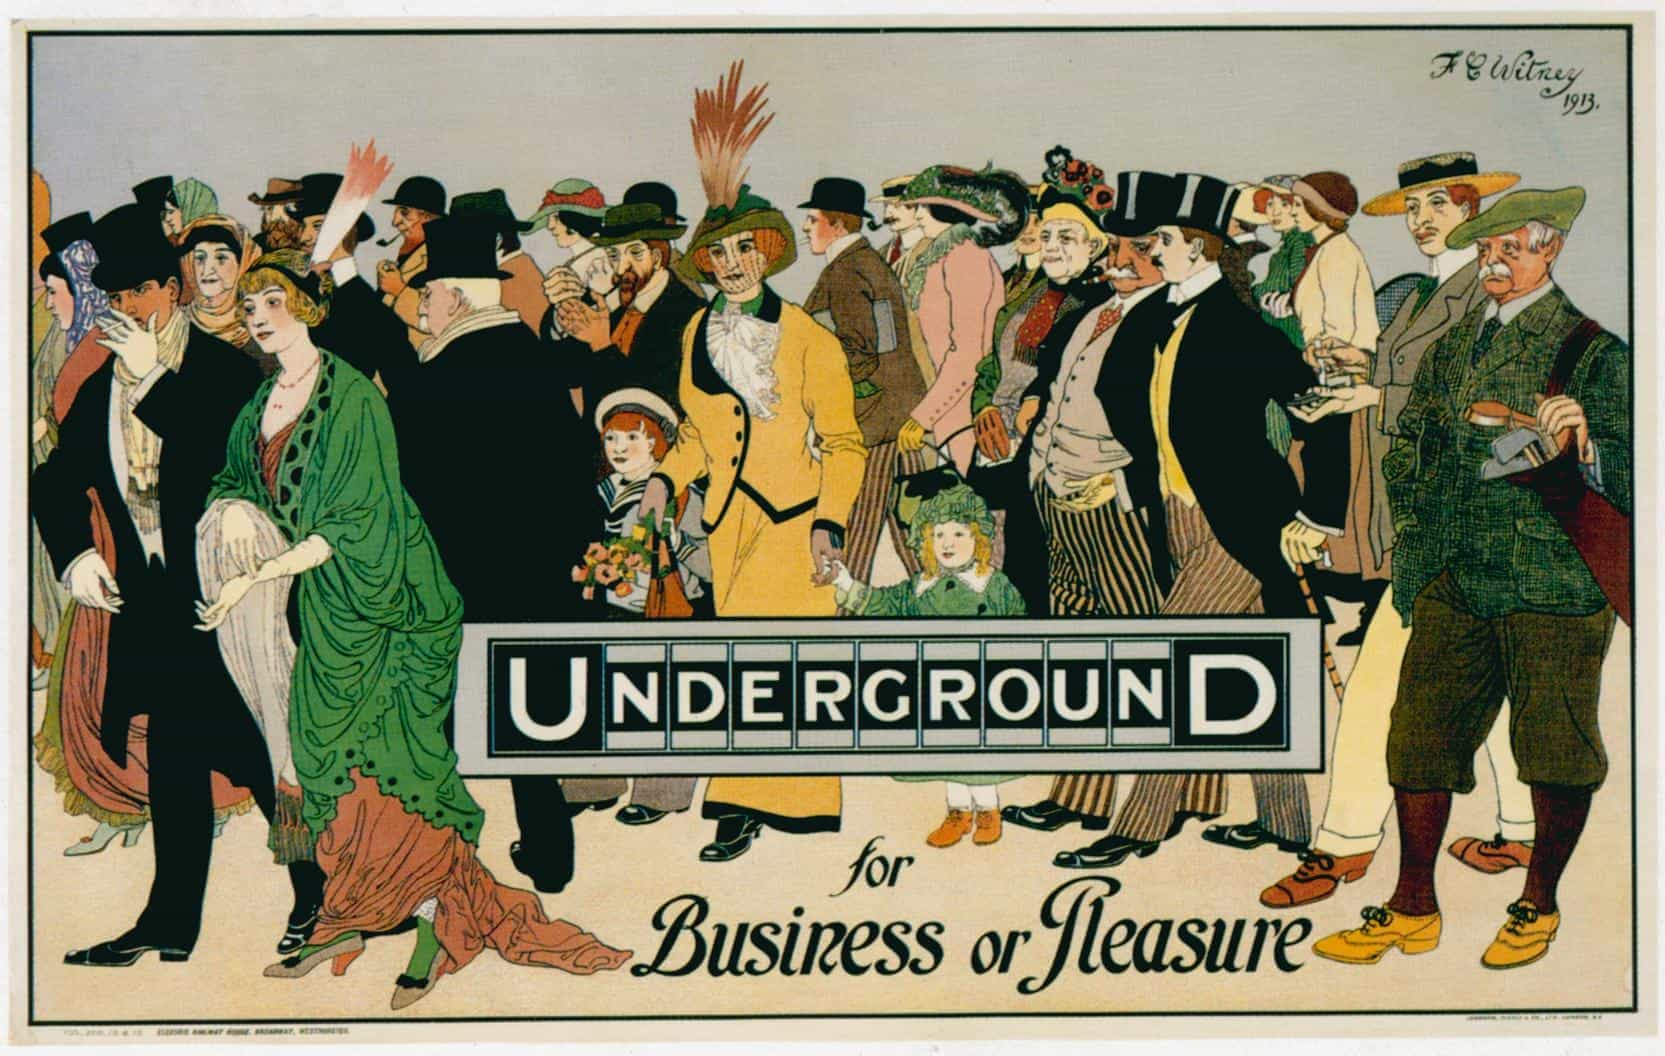 FE Witney's 'Underground for Business or Pleasure' London ...